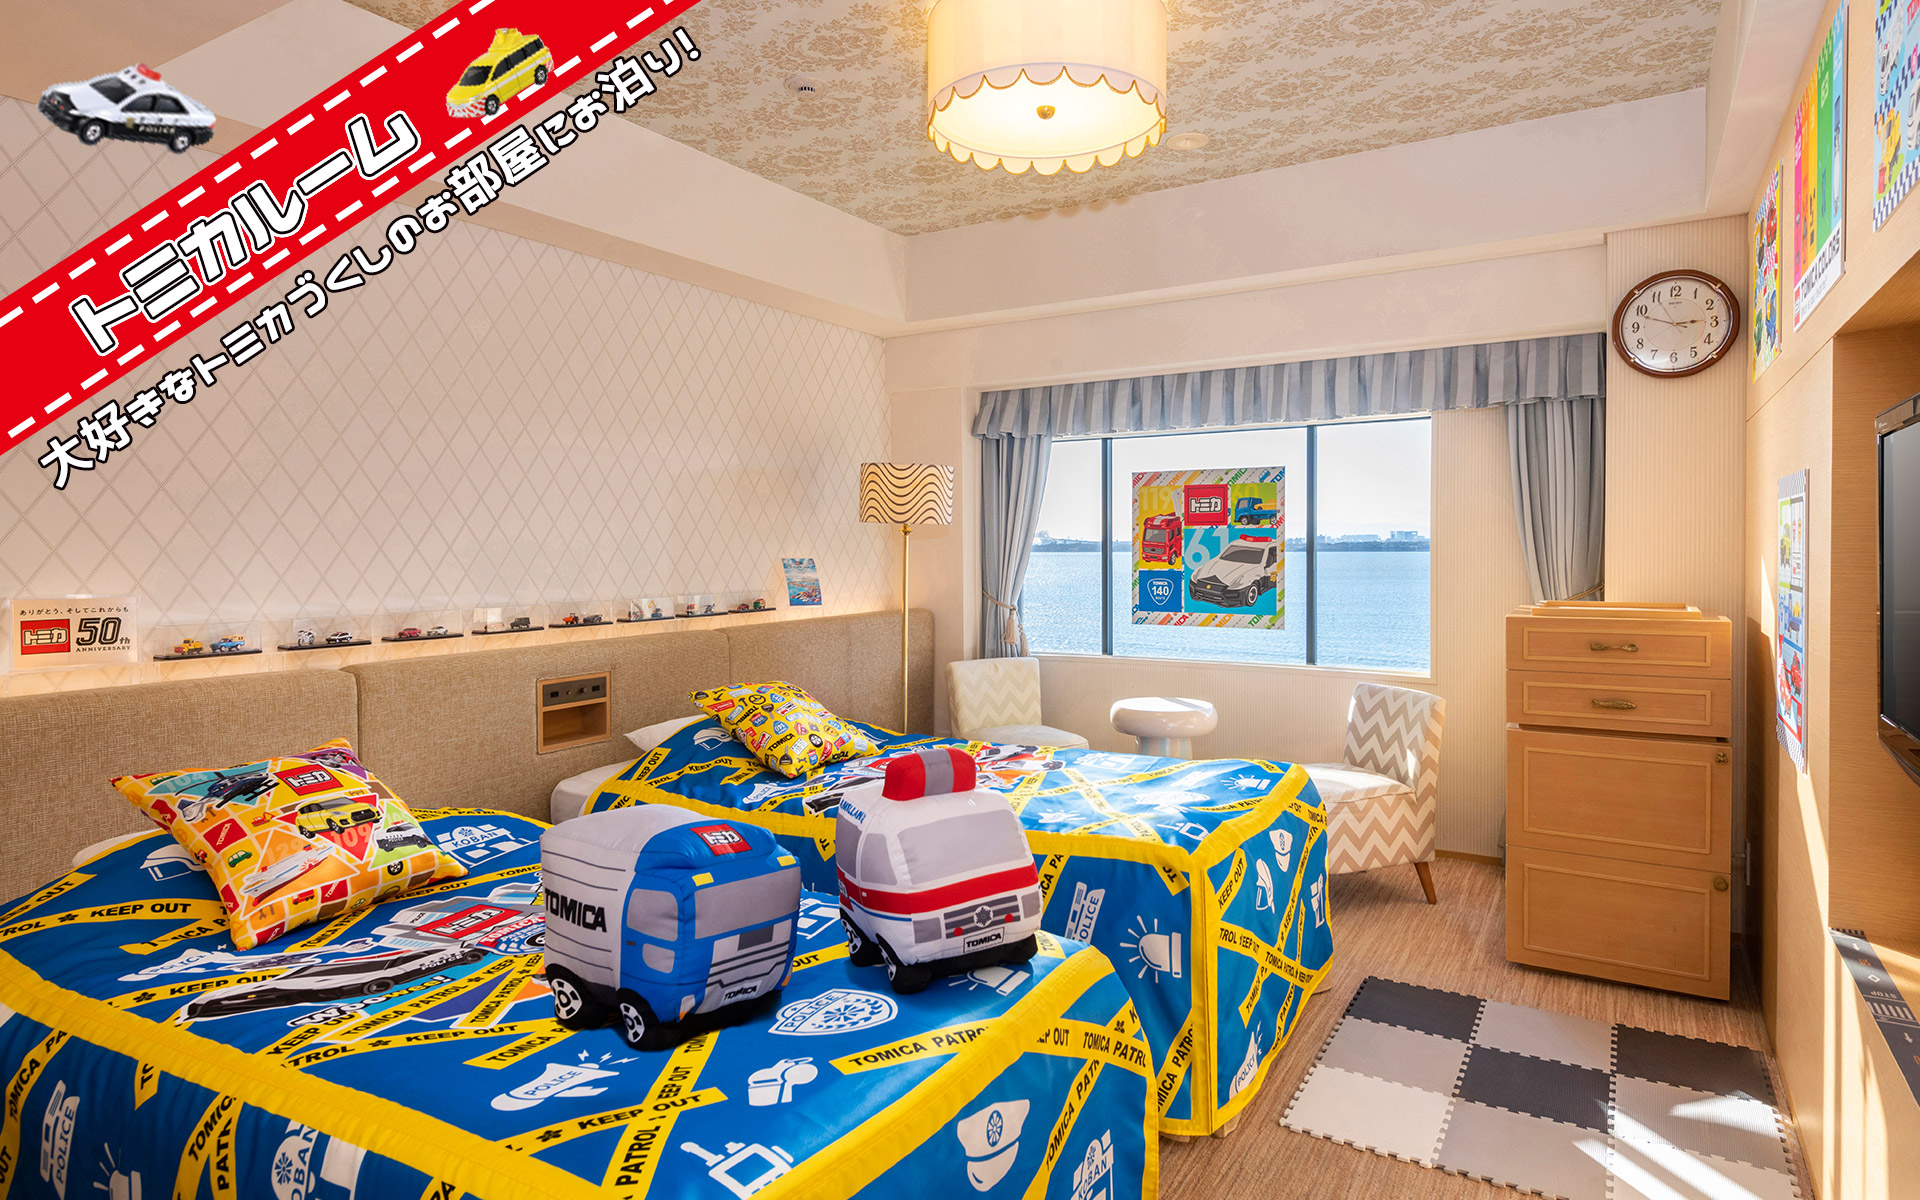 Minicars Stay In This Tomica Themed Hotel Room In Japan Japanese Nostalgic Car